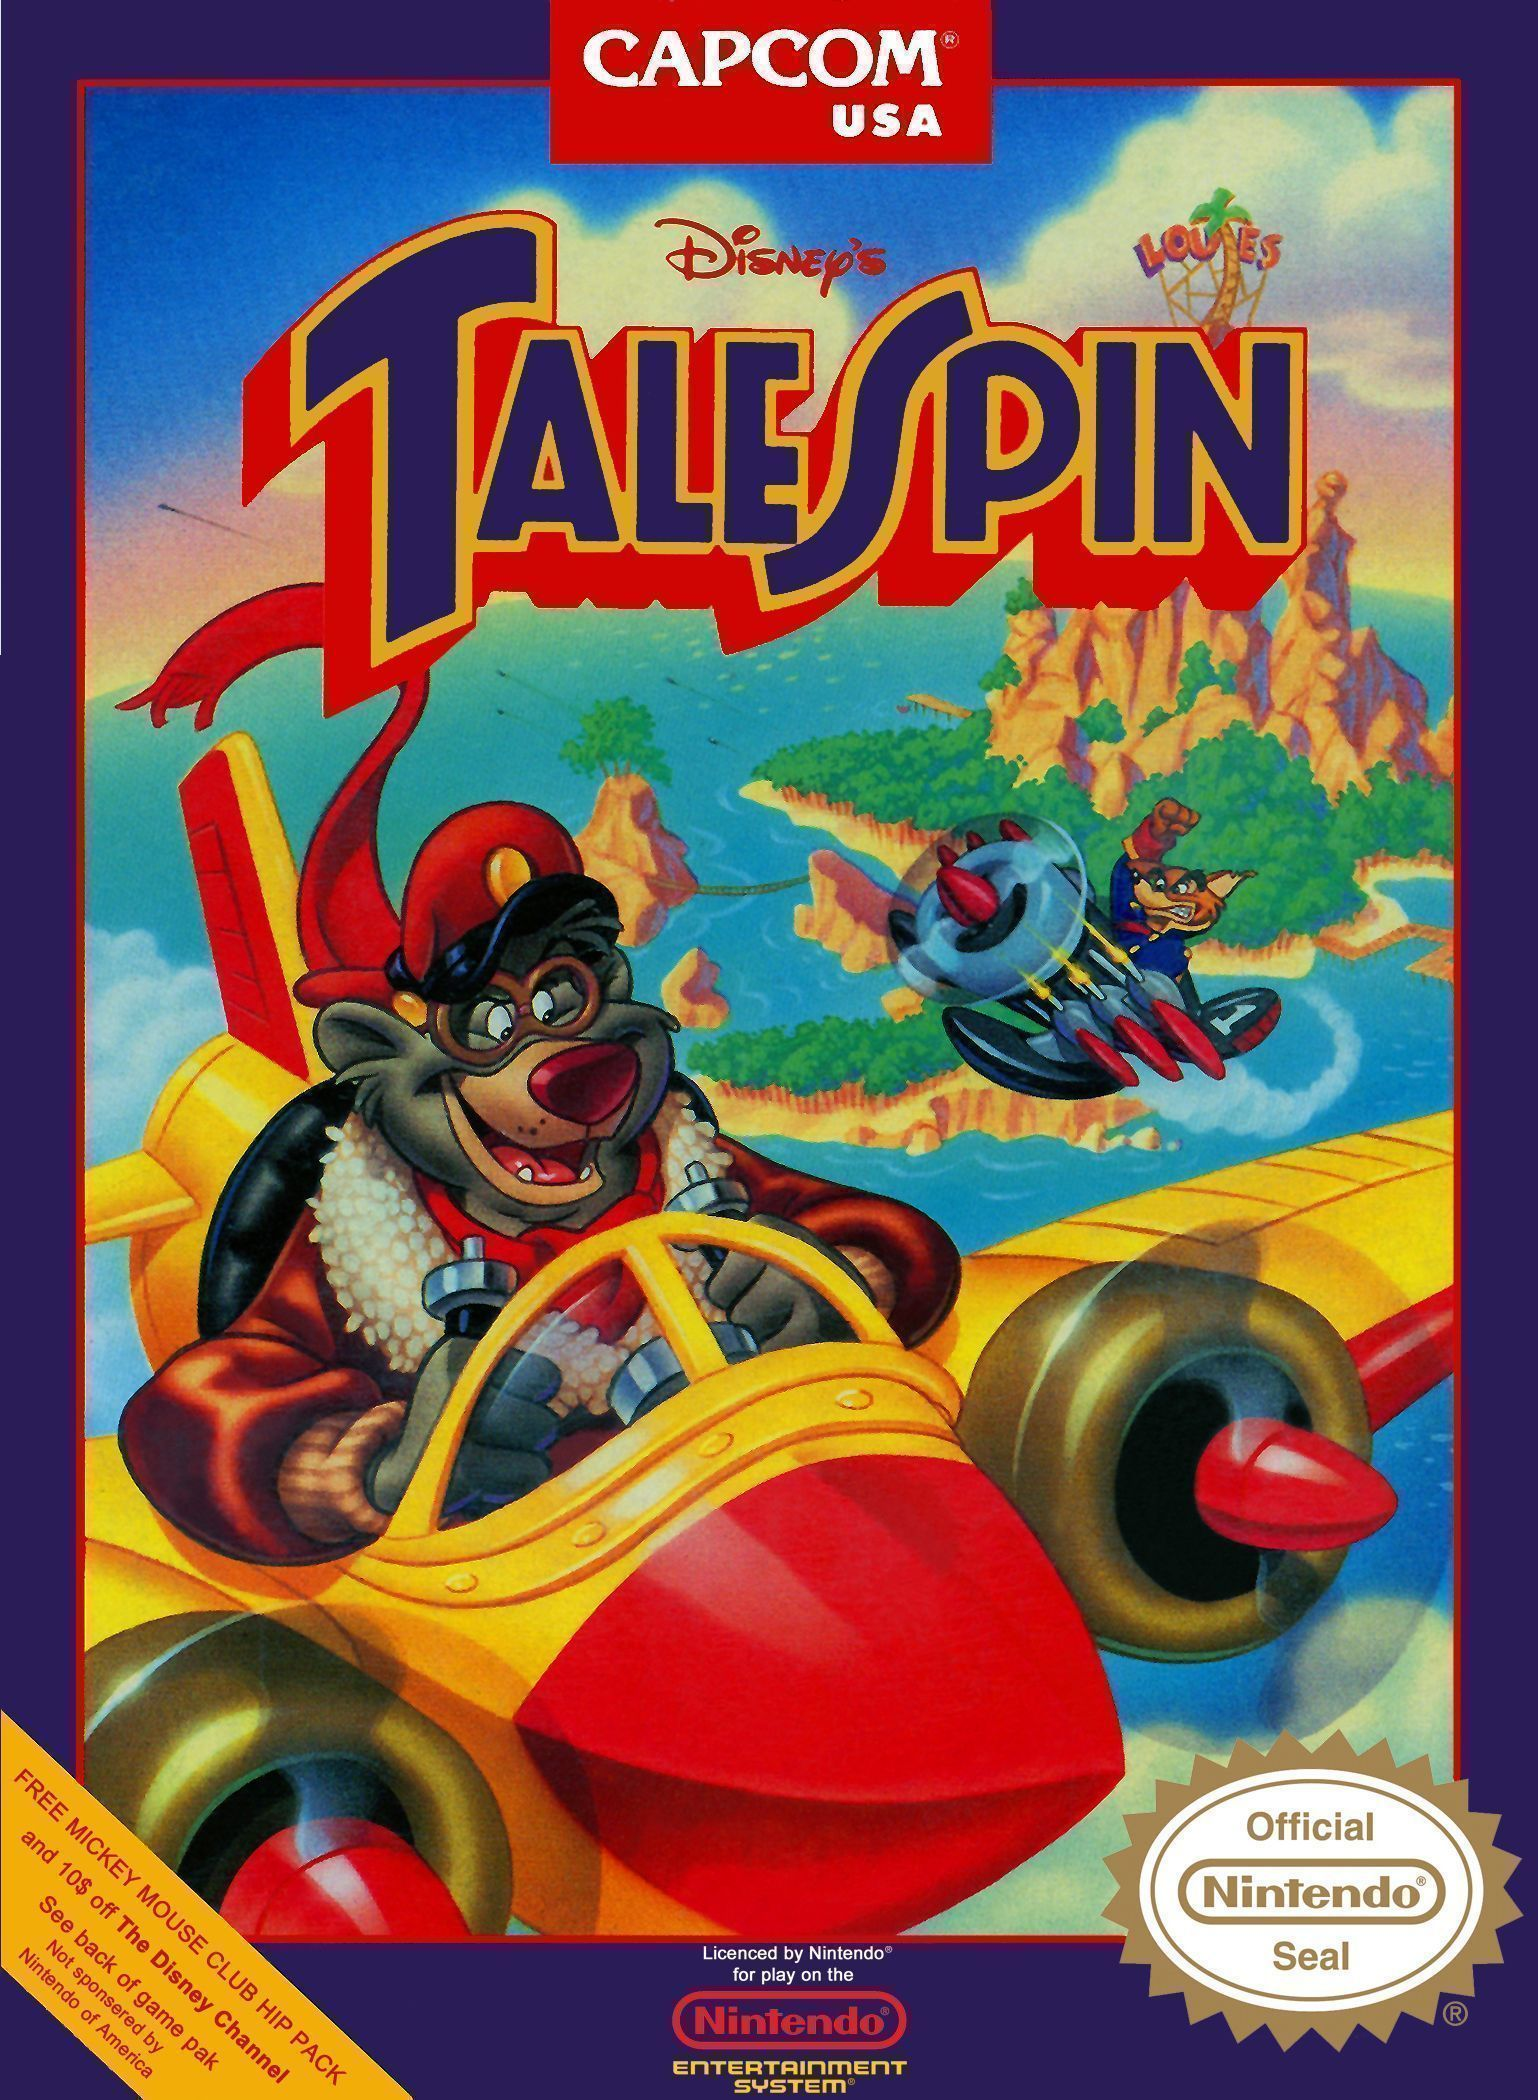 TaleSpin [T-Swed1.2]